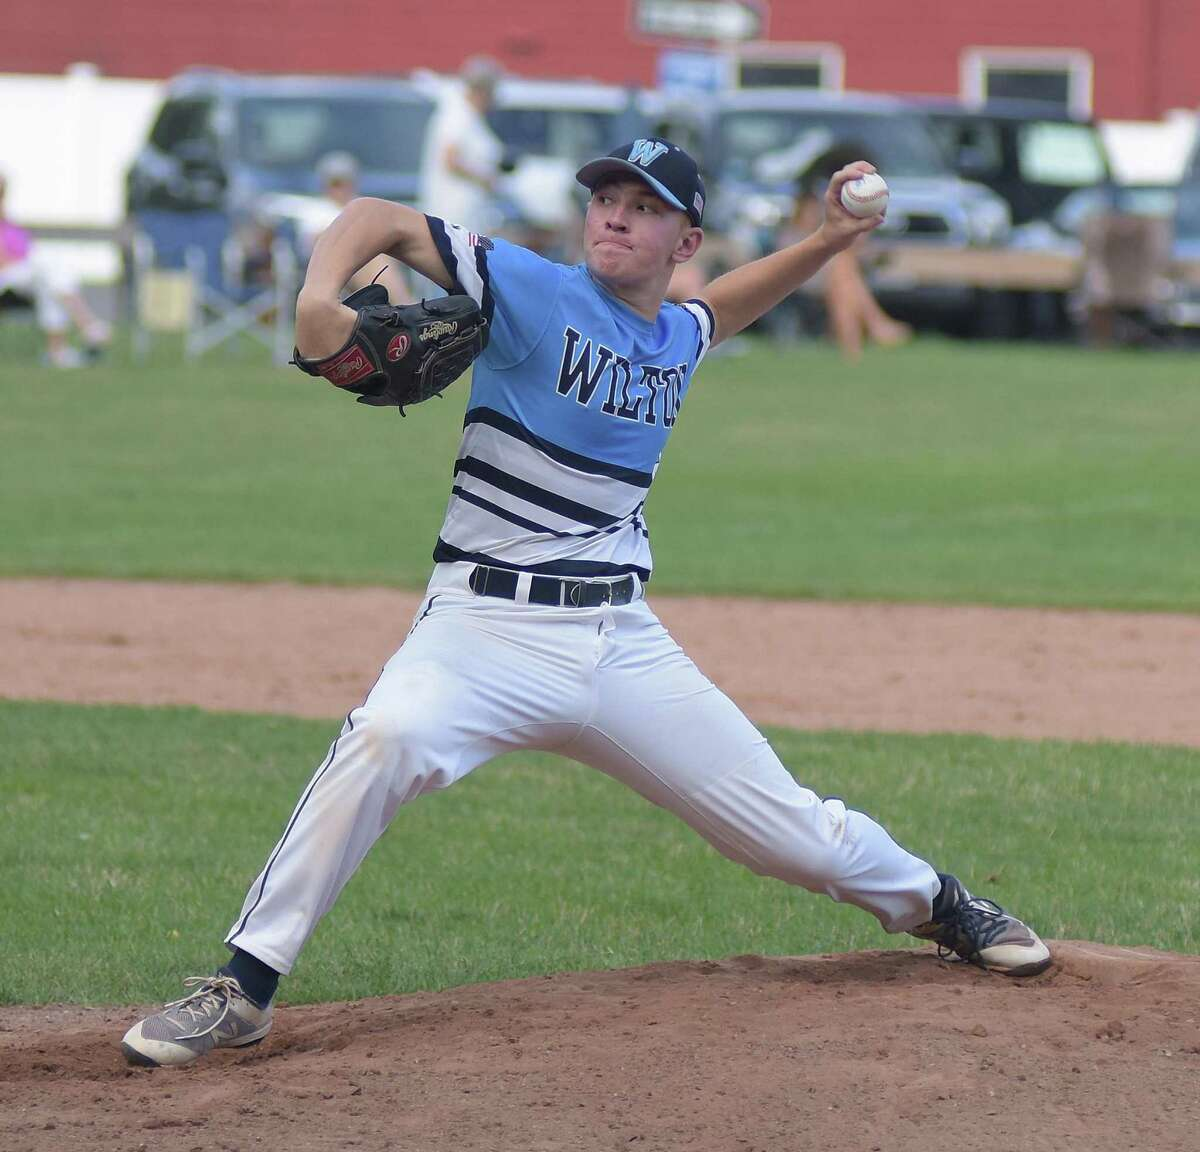 Wilton Post 86 pitcher Ryan Gabriele fires to the plate during Tuesday's American Legion state tournament game against Waterbury Post 1 at Wilton High School.